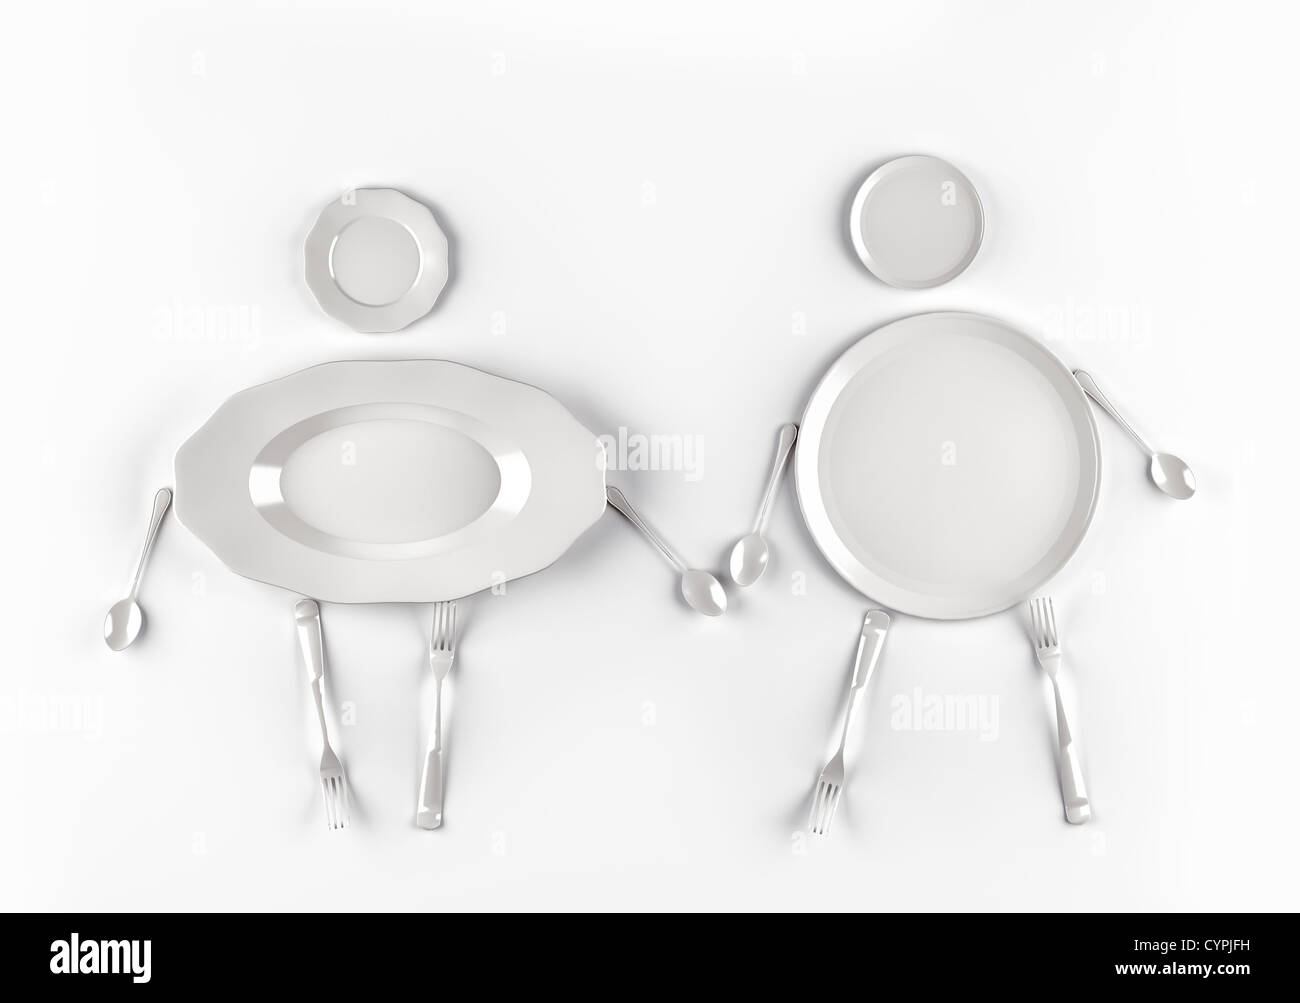 figures of men and women,  stylized by dishes on a white background - Stock Image